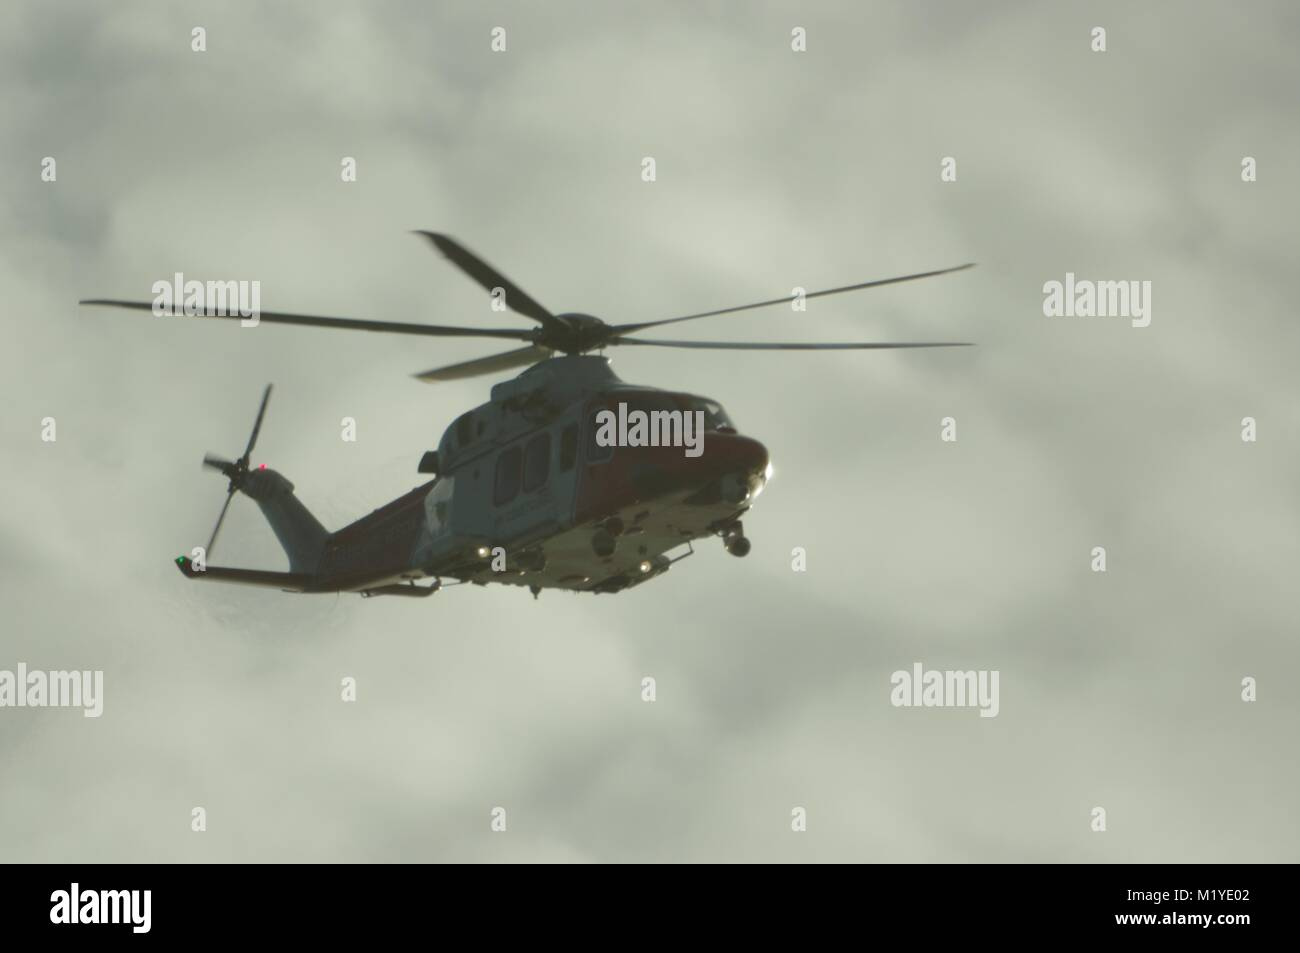 Royal Navy Helicopter Flying over the English Channel. Dawlish, South Devon, UK. - Stock Image